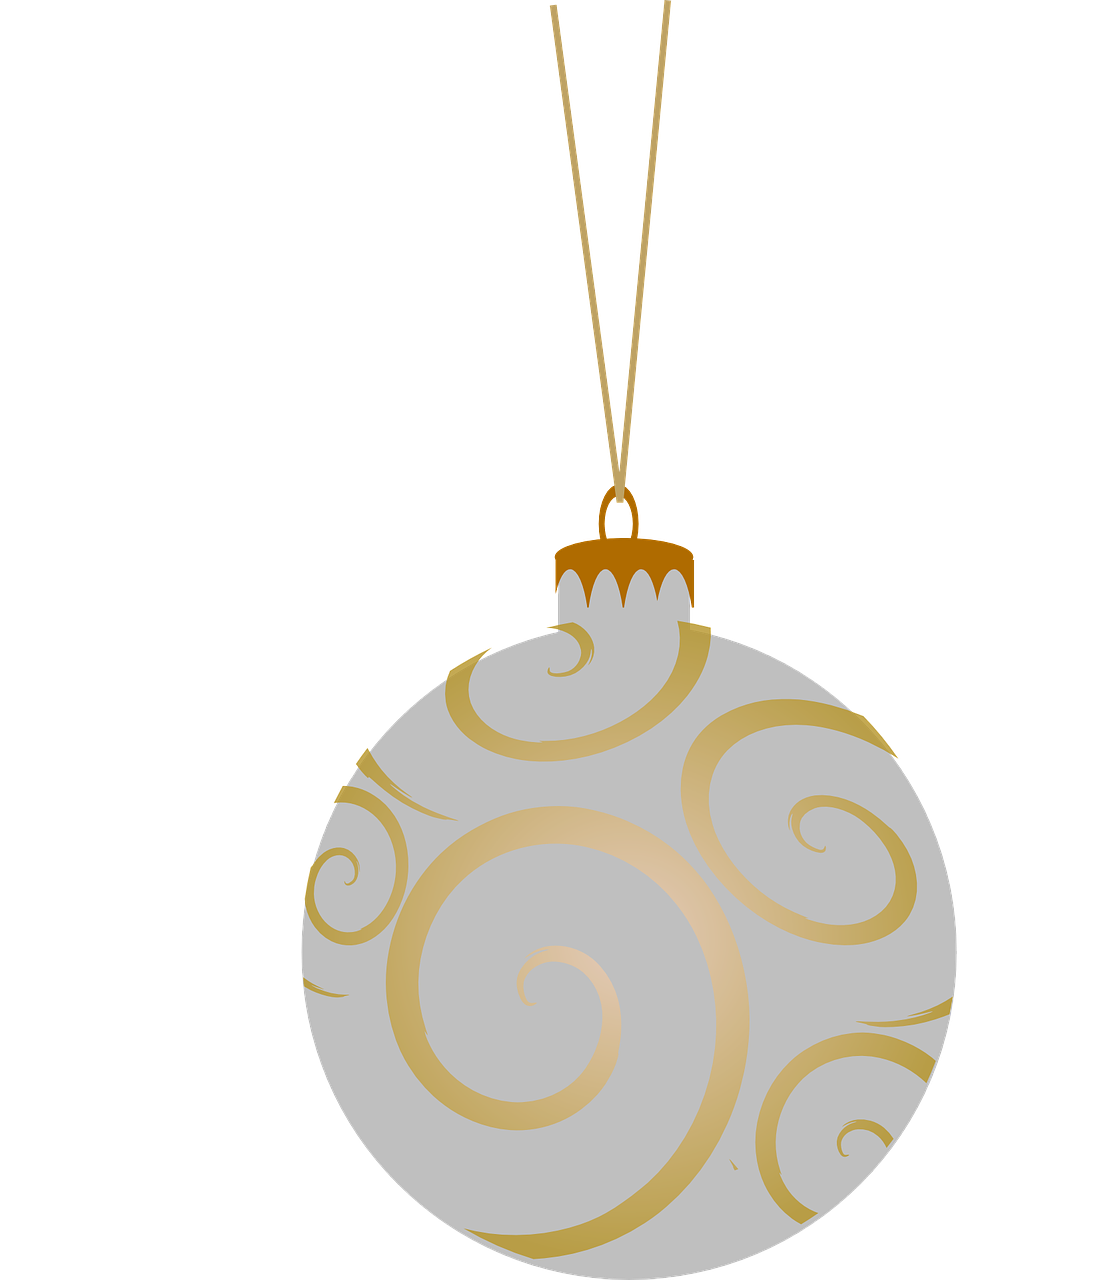 how to draw a Christmas ball, bauble 2